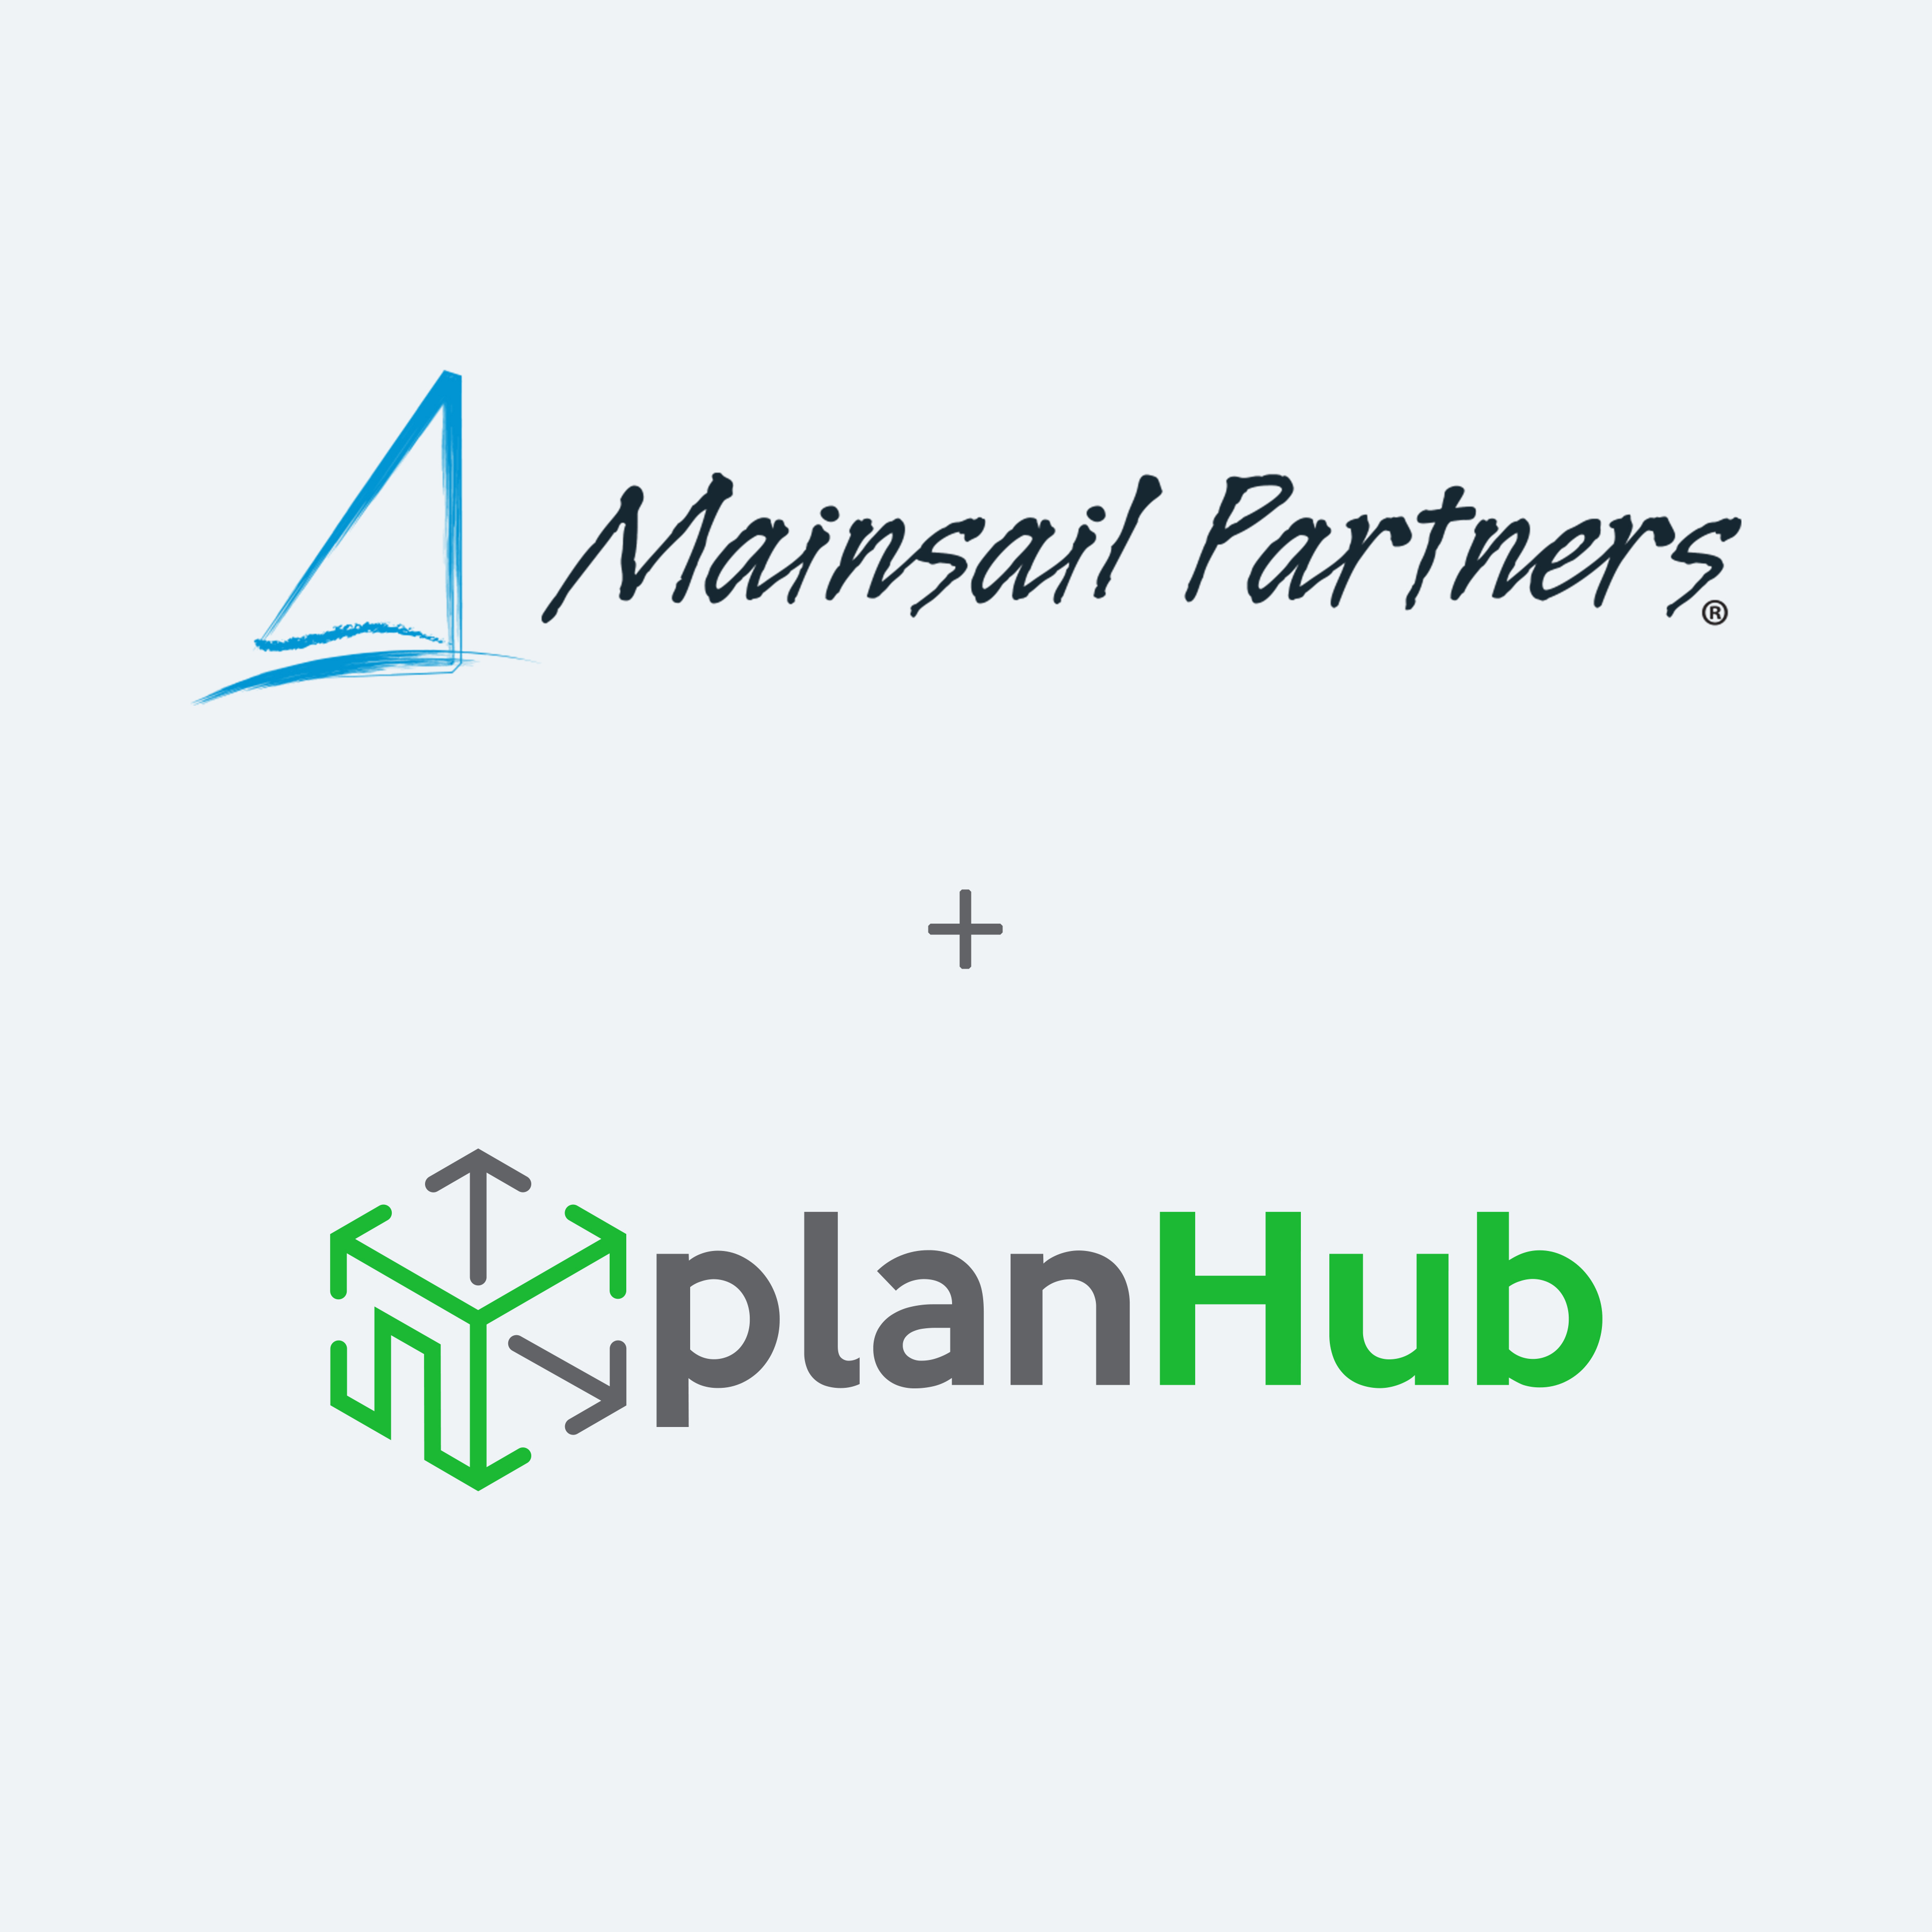 PlanHub Announces $41 Million Investment from Mainsail Partners